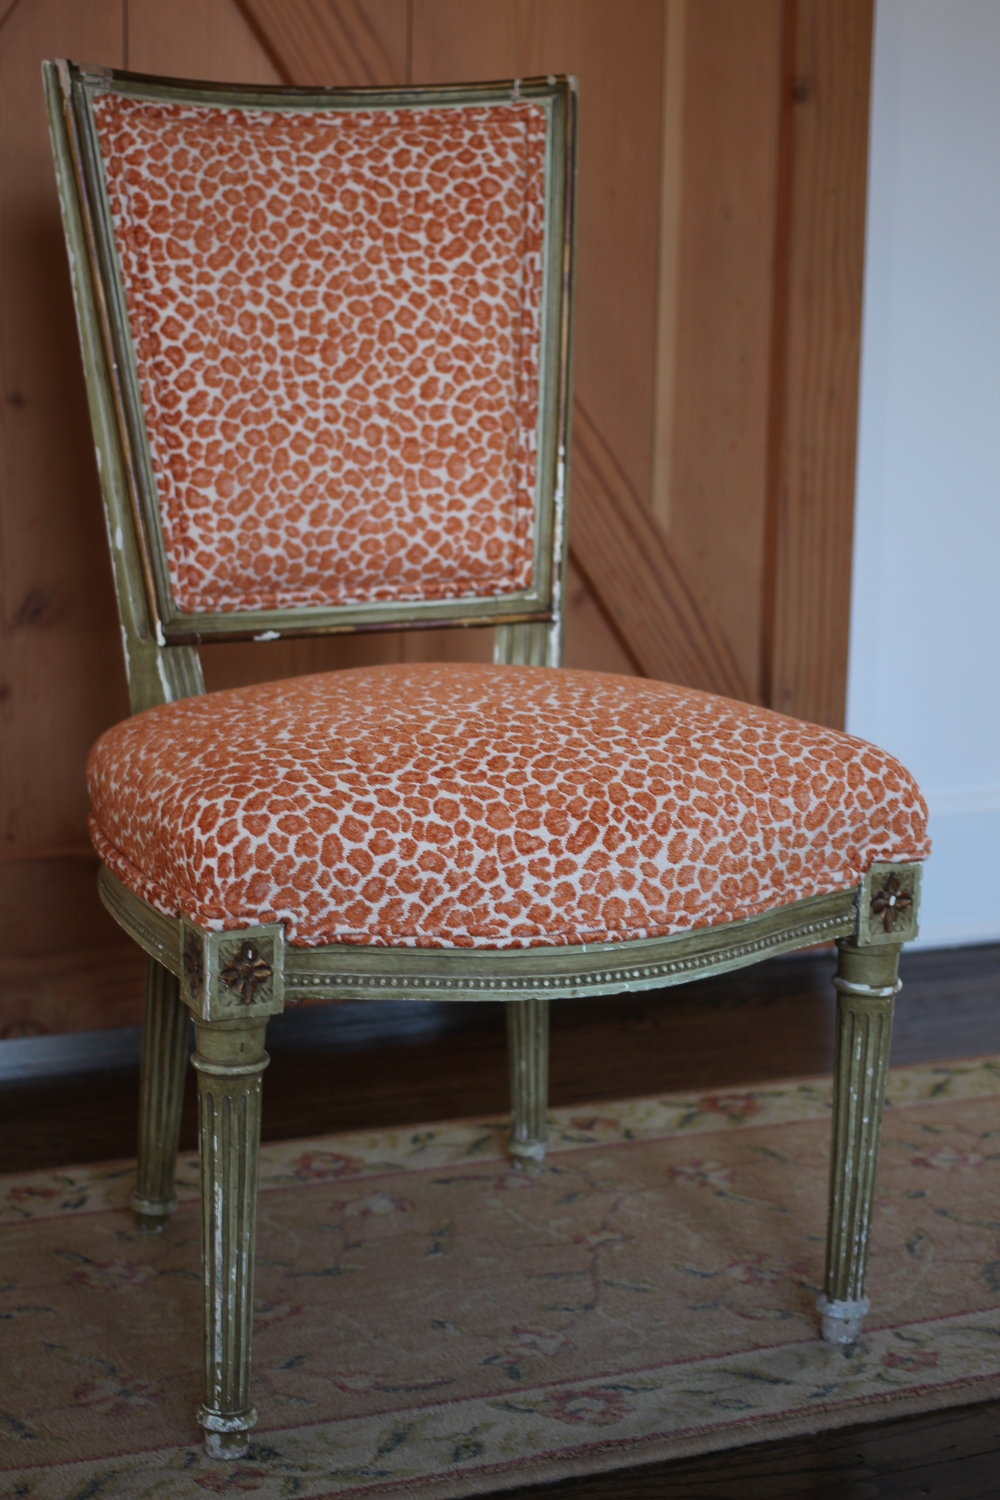 frenh chair, Traditional upholstery, covered in stout textiles' 'beast'